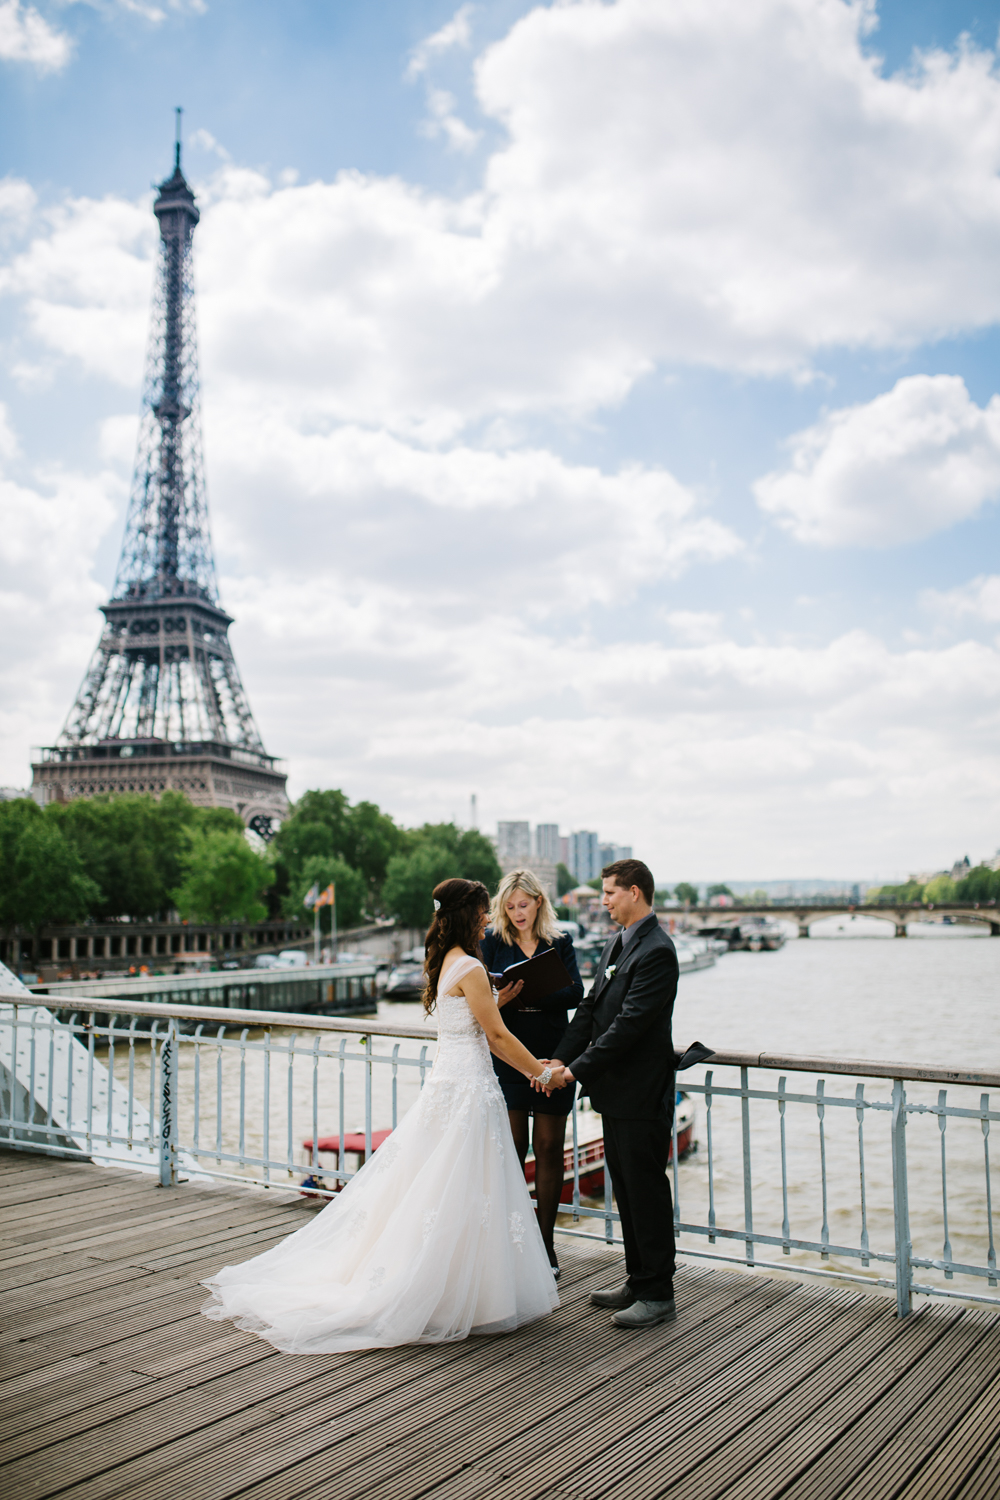 Chico-Wedding-Photography-Ranalla-Photo-Films-Wedding-Video-Wedding-Photographer-Destination-wedding-photographer-venice-wedding-paris-wedding-paris-night-eiffel-tower-1.jpg